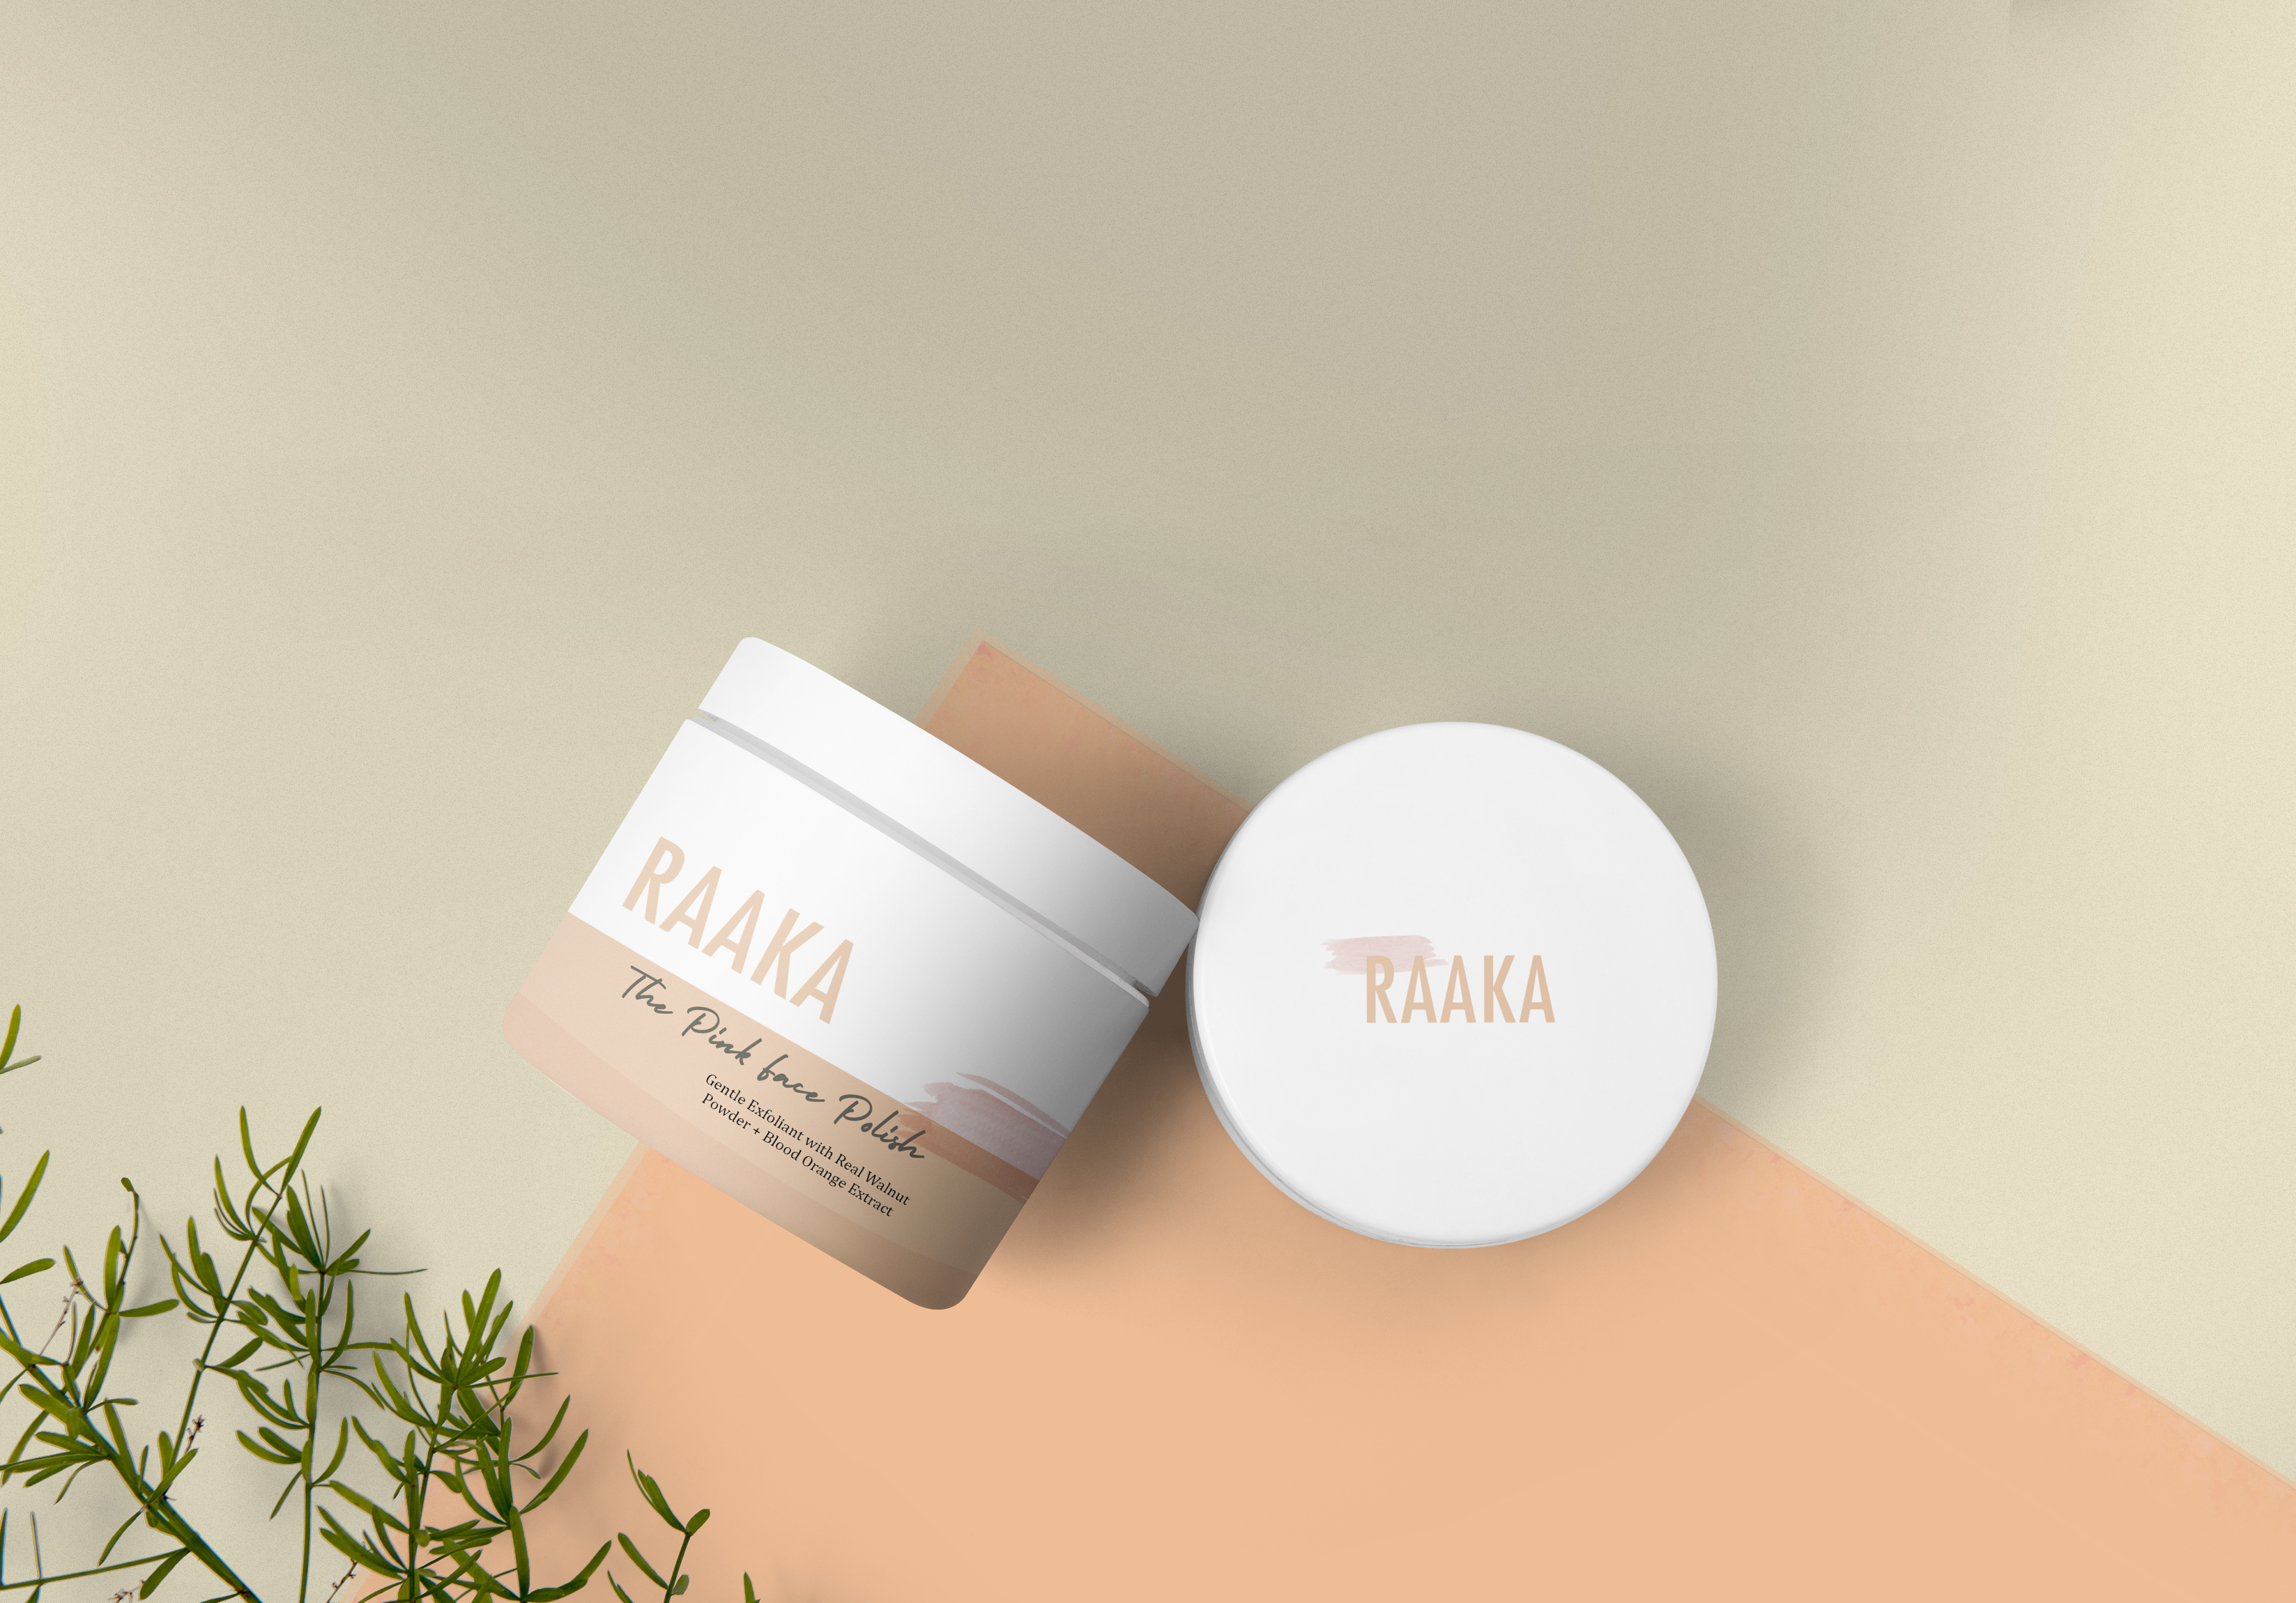 RAAKA packaging design